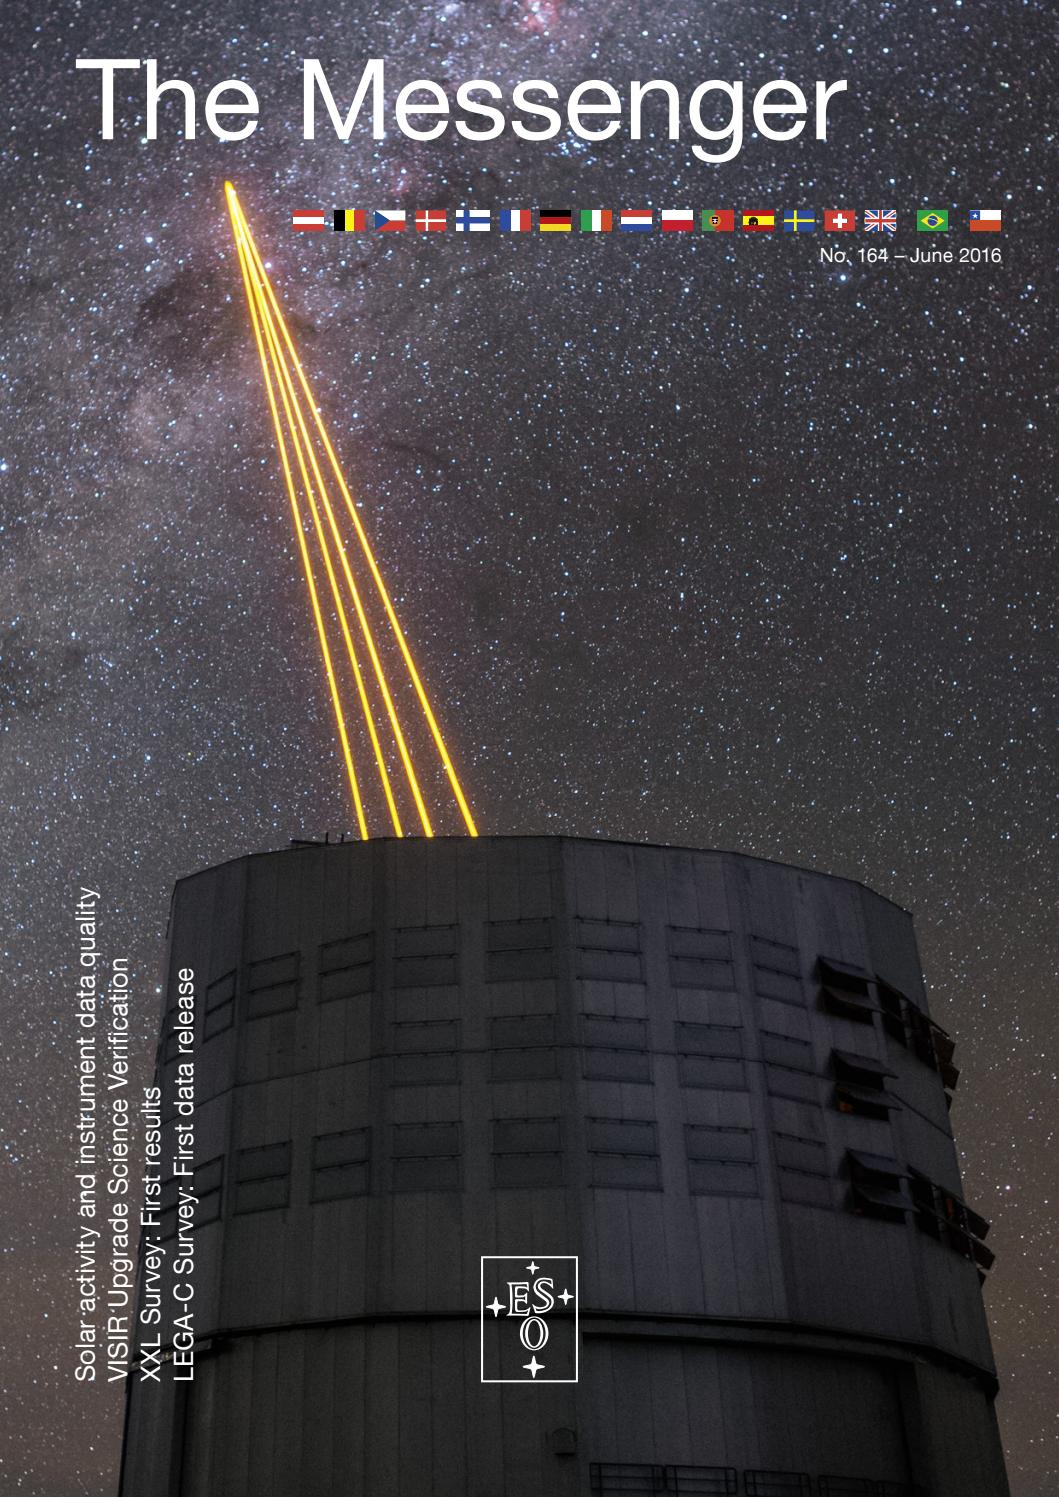 Xxl Lutz Young The Messenger 164 By European Southern Observatory Issuu